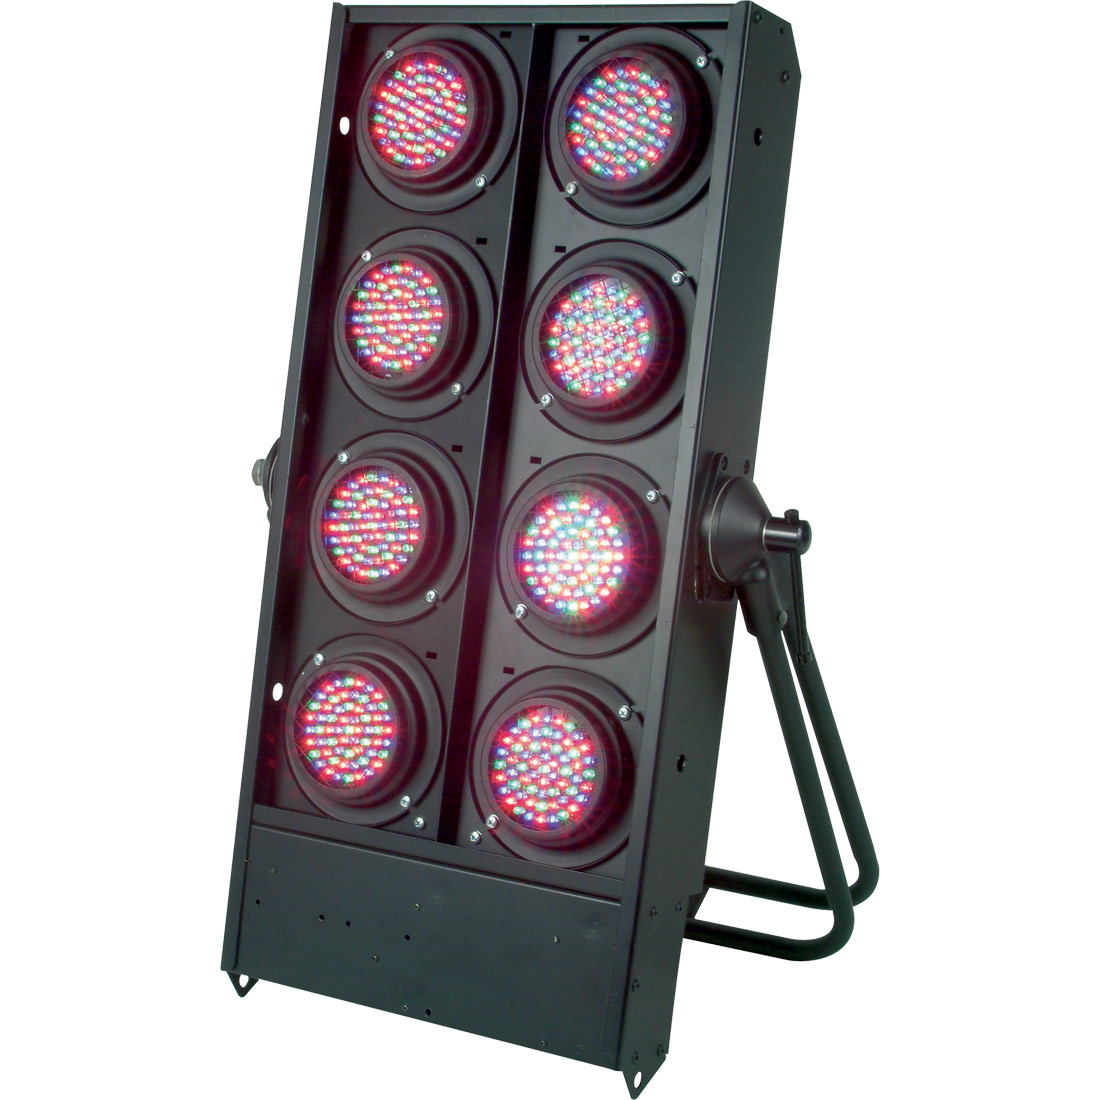 LED PAR 36 Blinder DMX